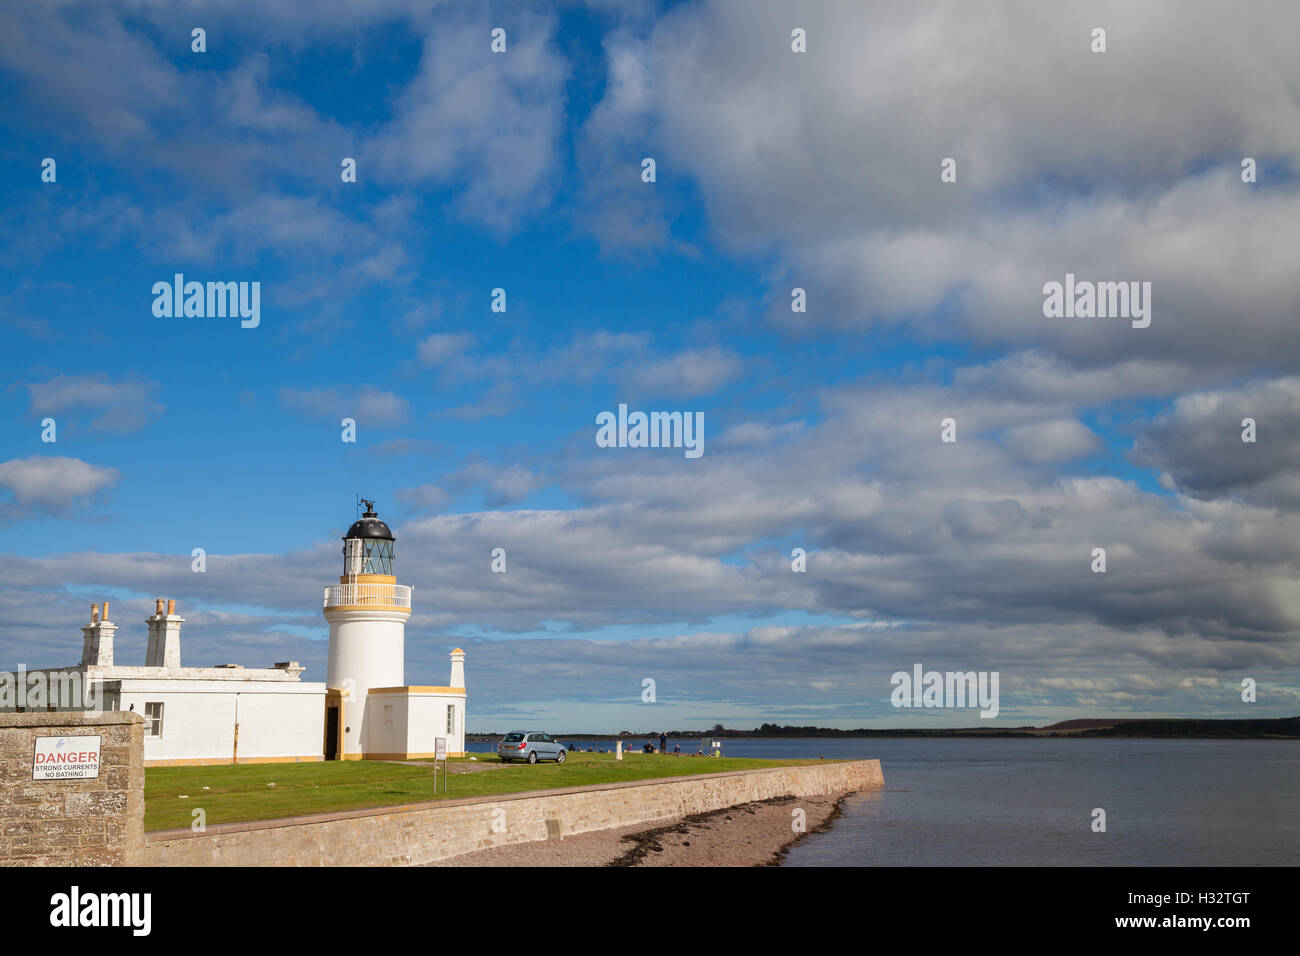 The Lighthouse at Chanonry Point on the Moray Firth, Scotland. Stock Photo